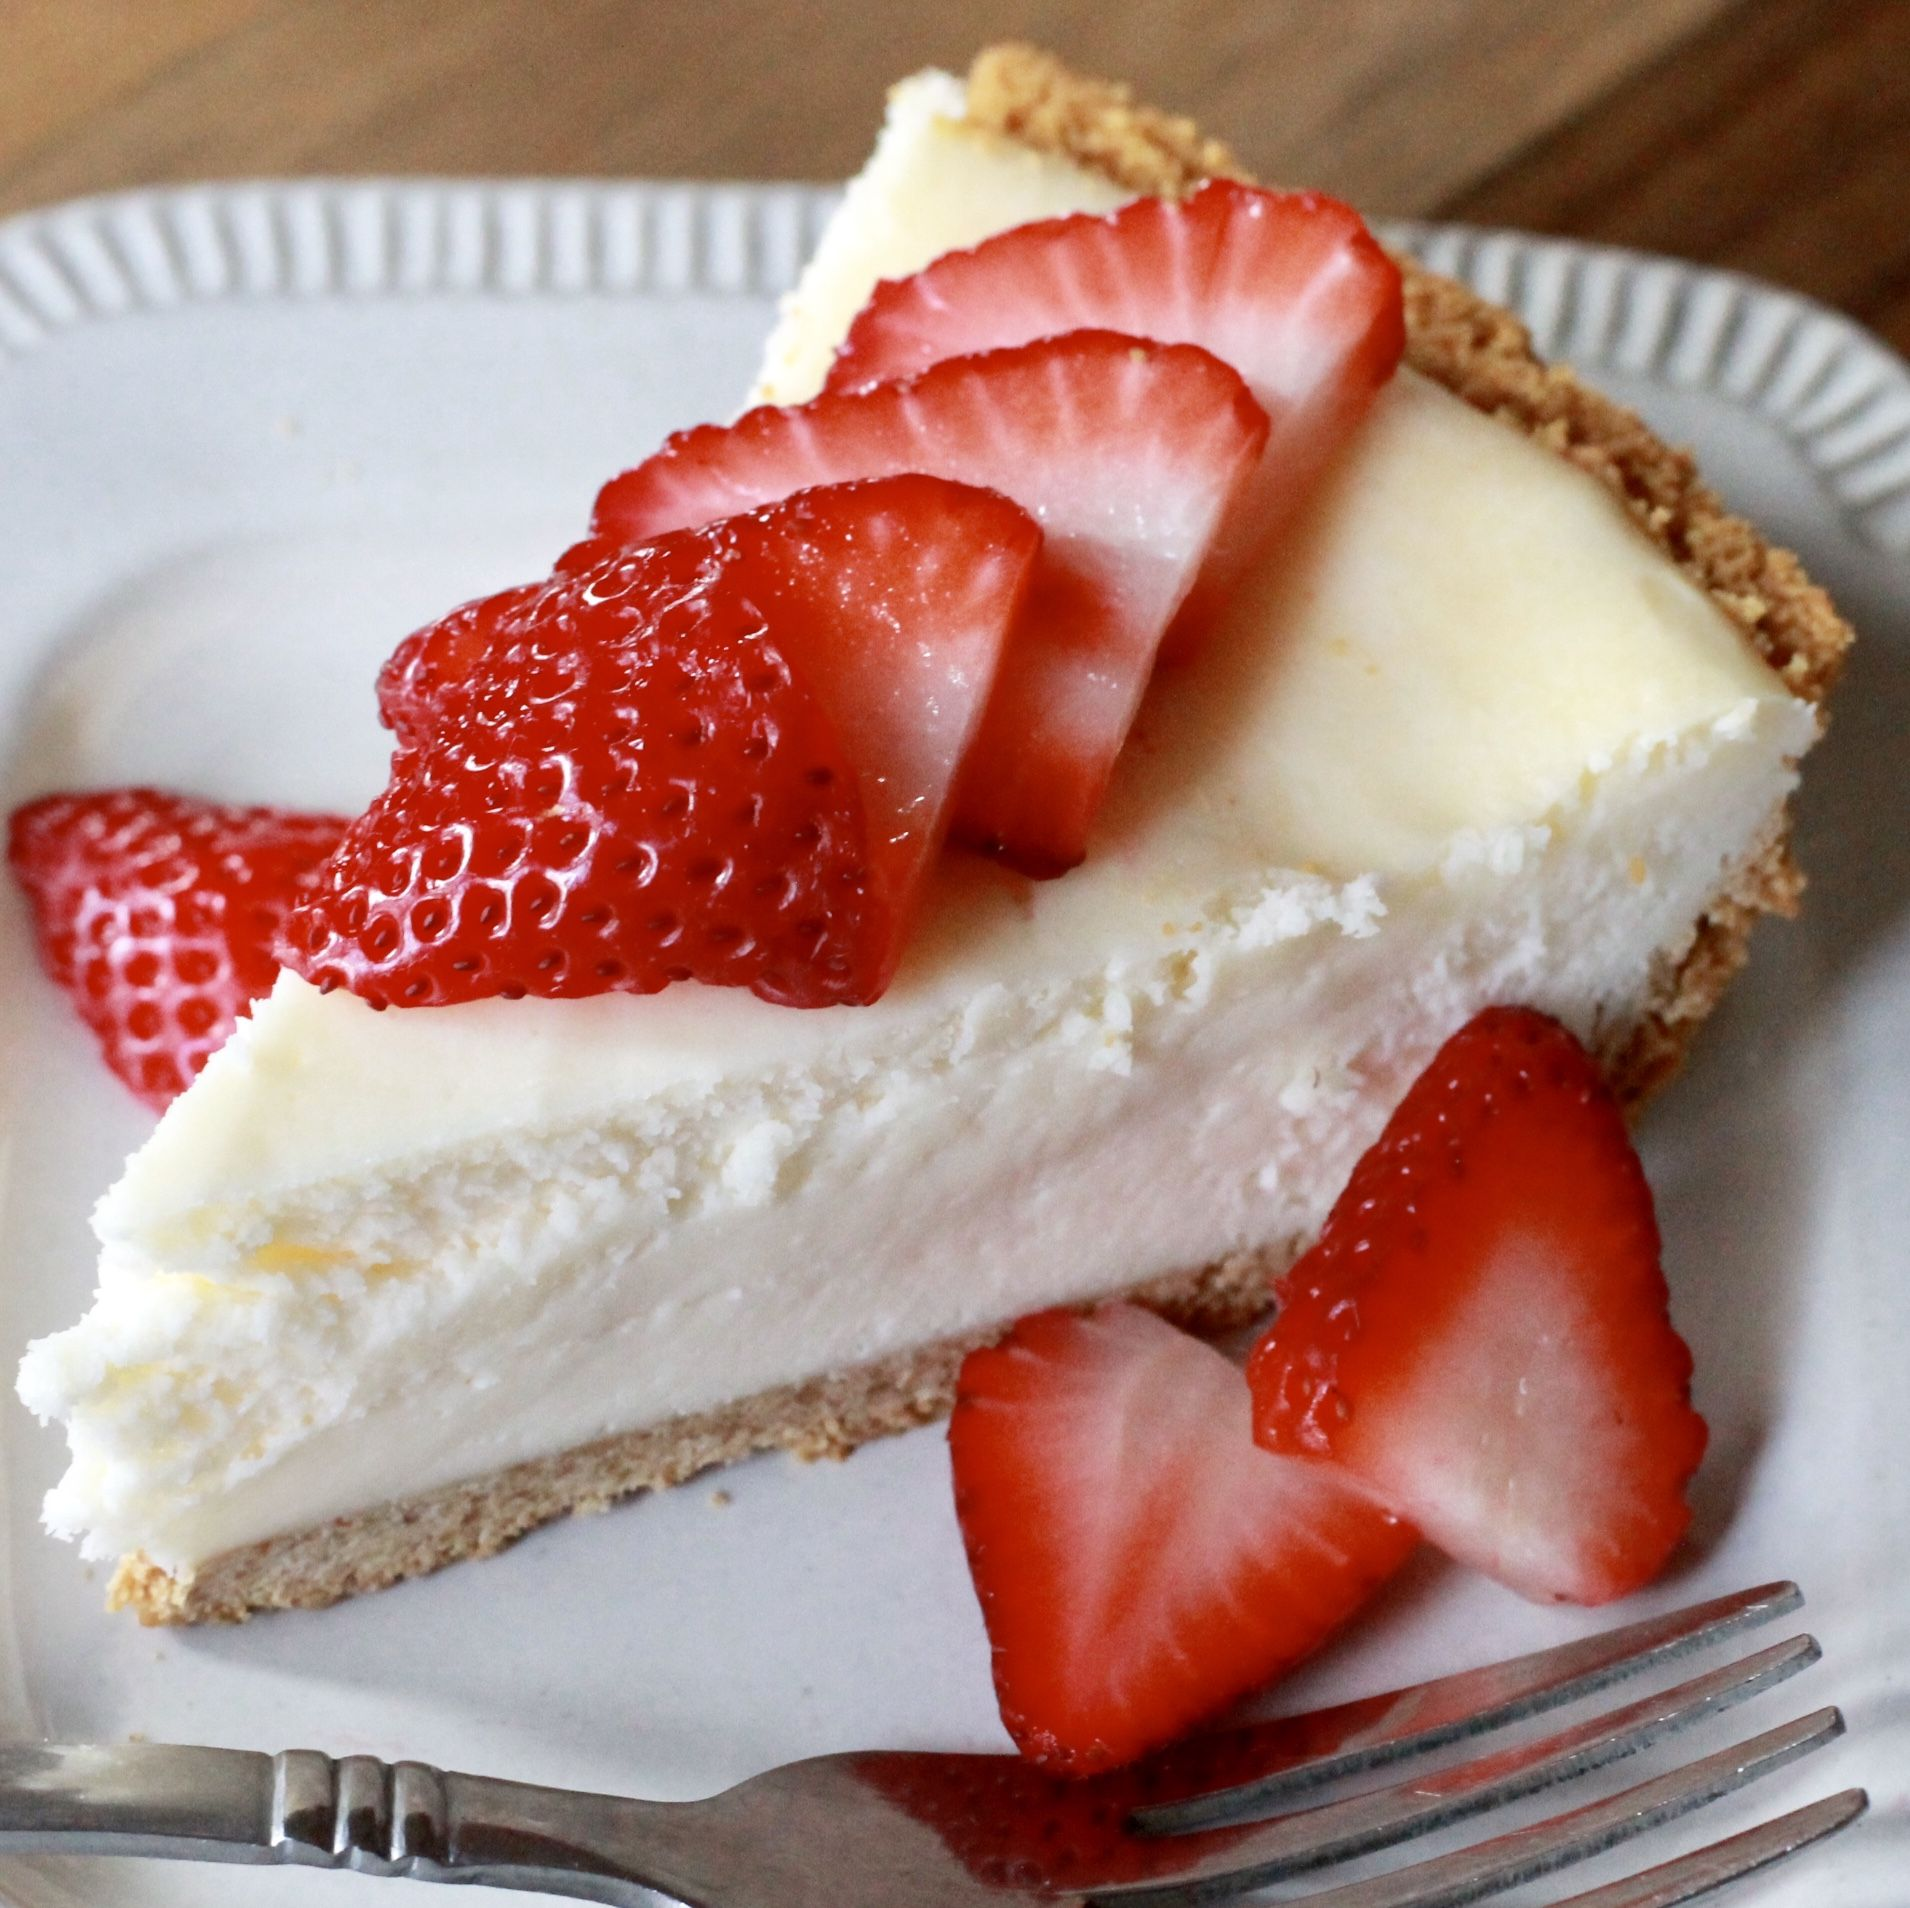 Baked Egg Free Cheesecake Safely Delish Recipe Easy Cheesecake Recipes Eggless Cheesecake Recipe Egg Free Desserts